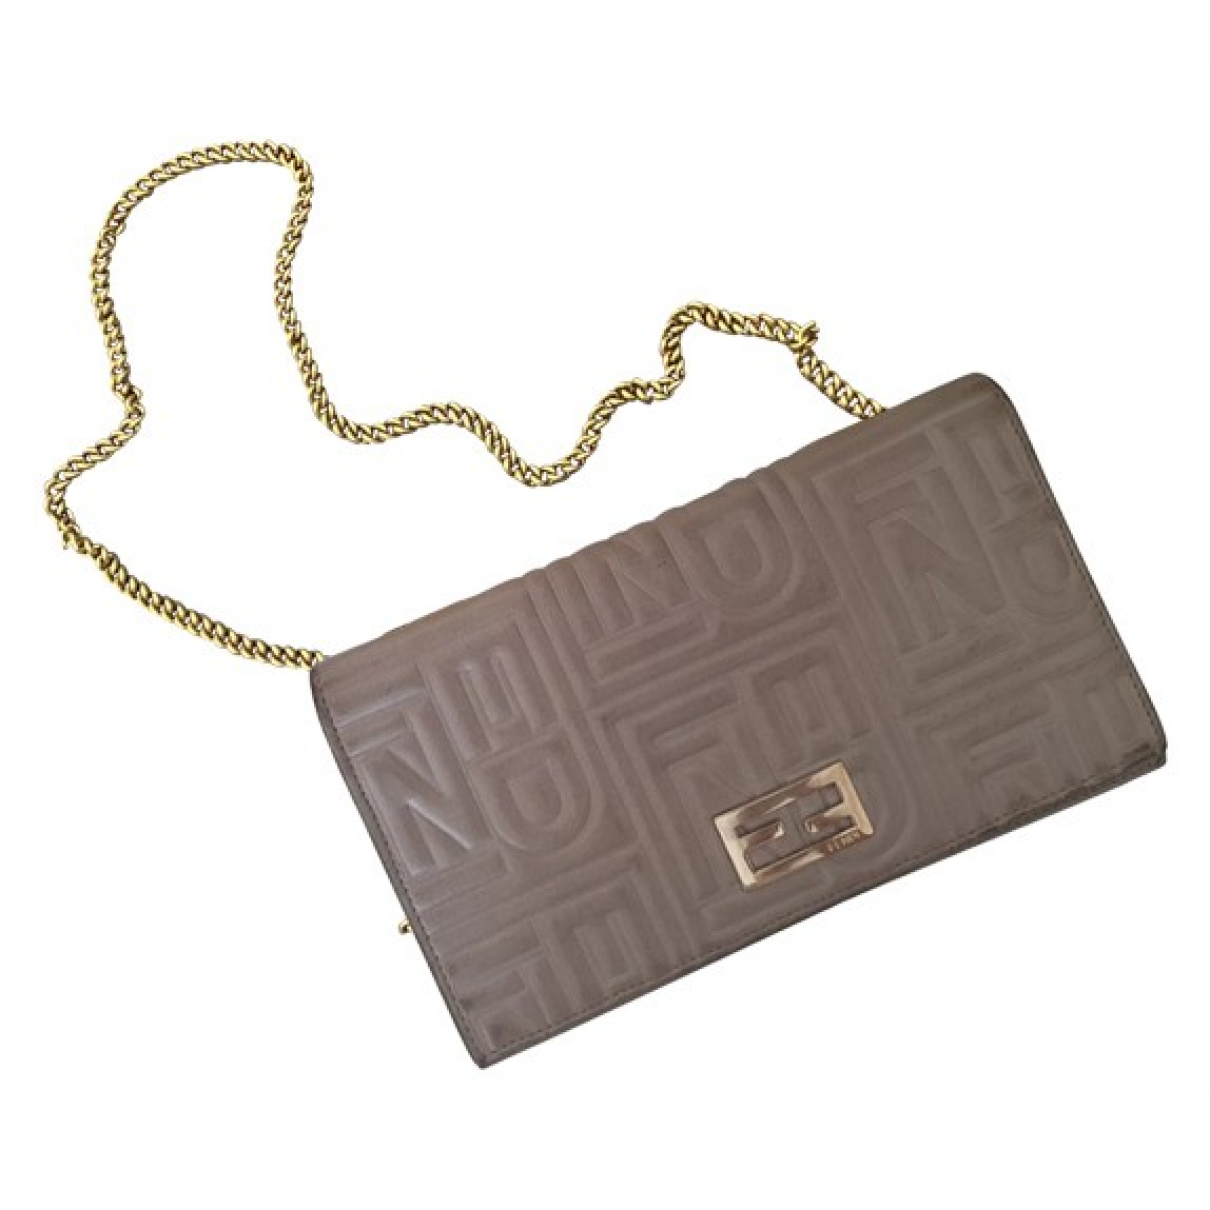 Fendi \N Grey Leather Clutch bag for Women \N